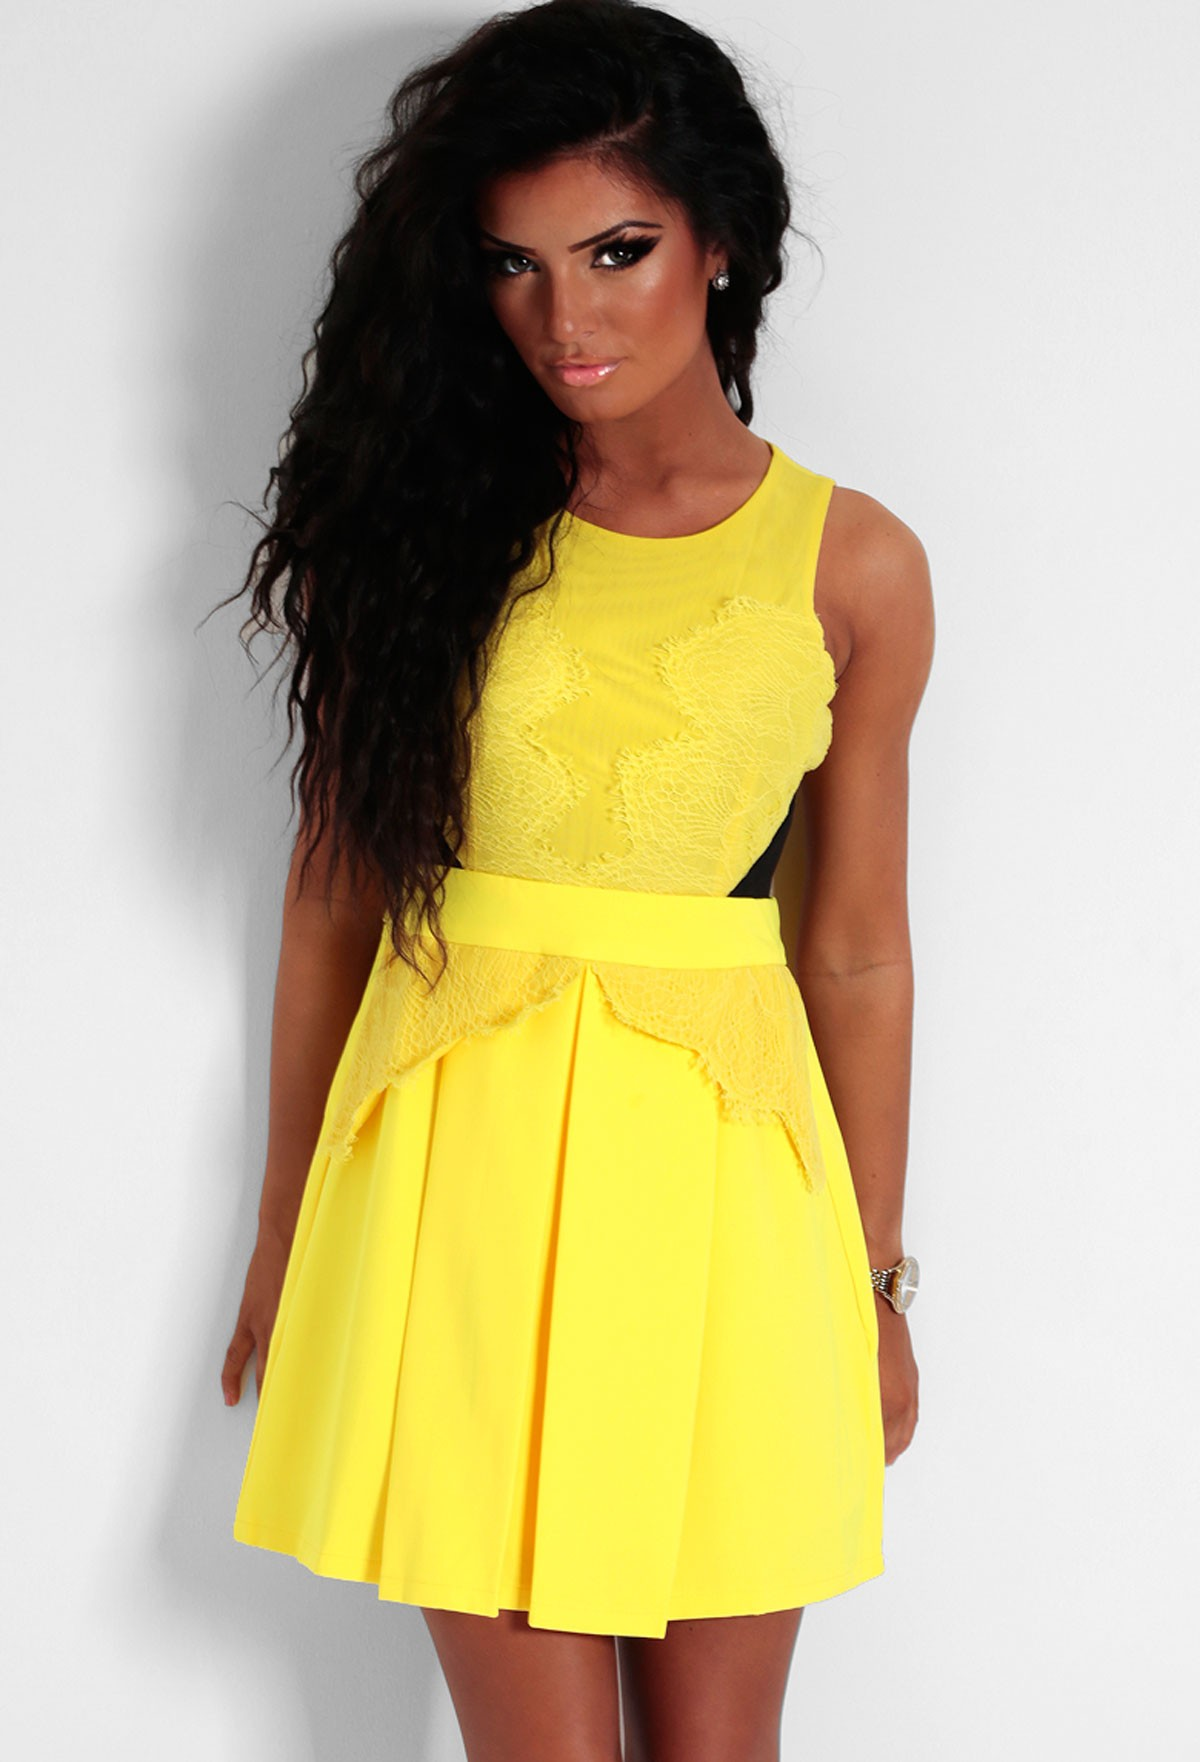 LUXE Yellow Lace Detail Skater Dress - Pink Boutique